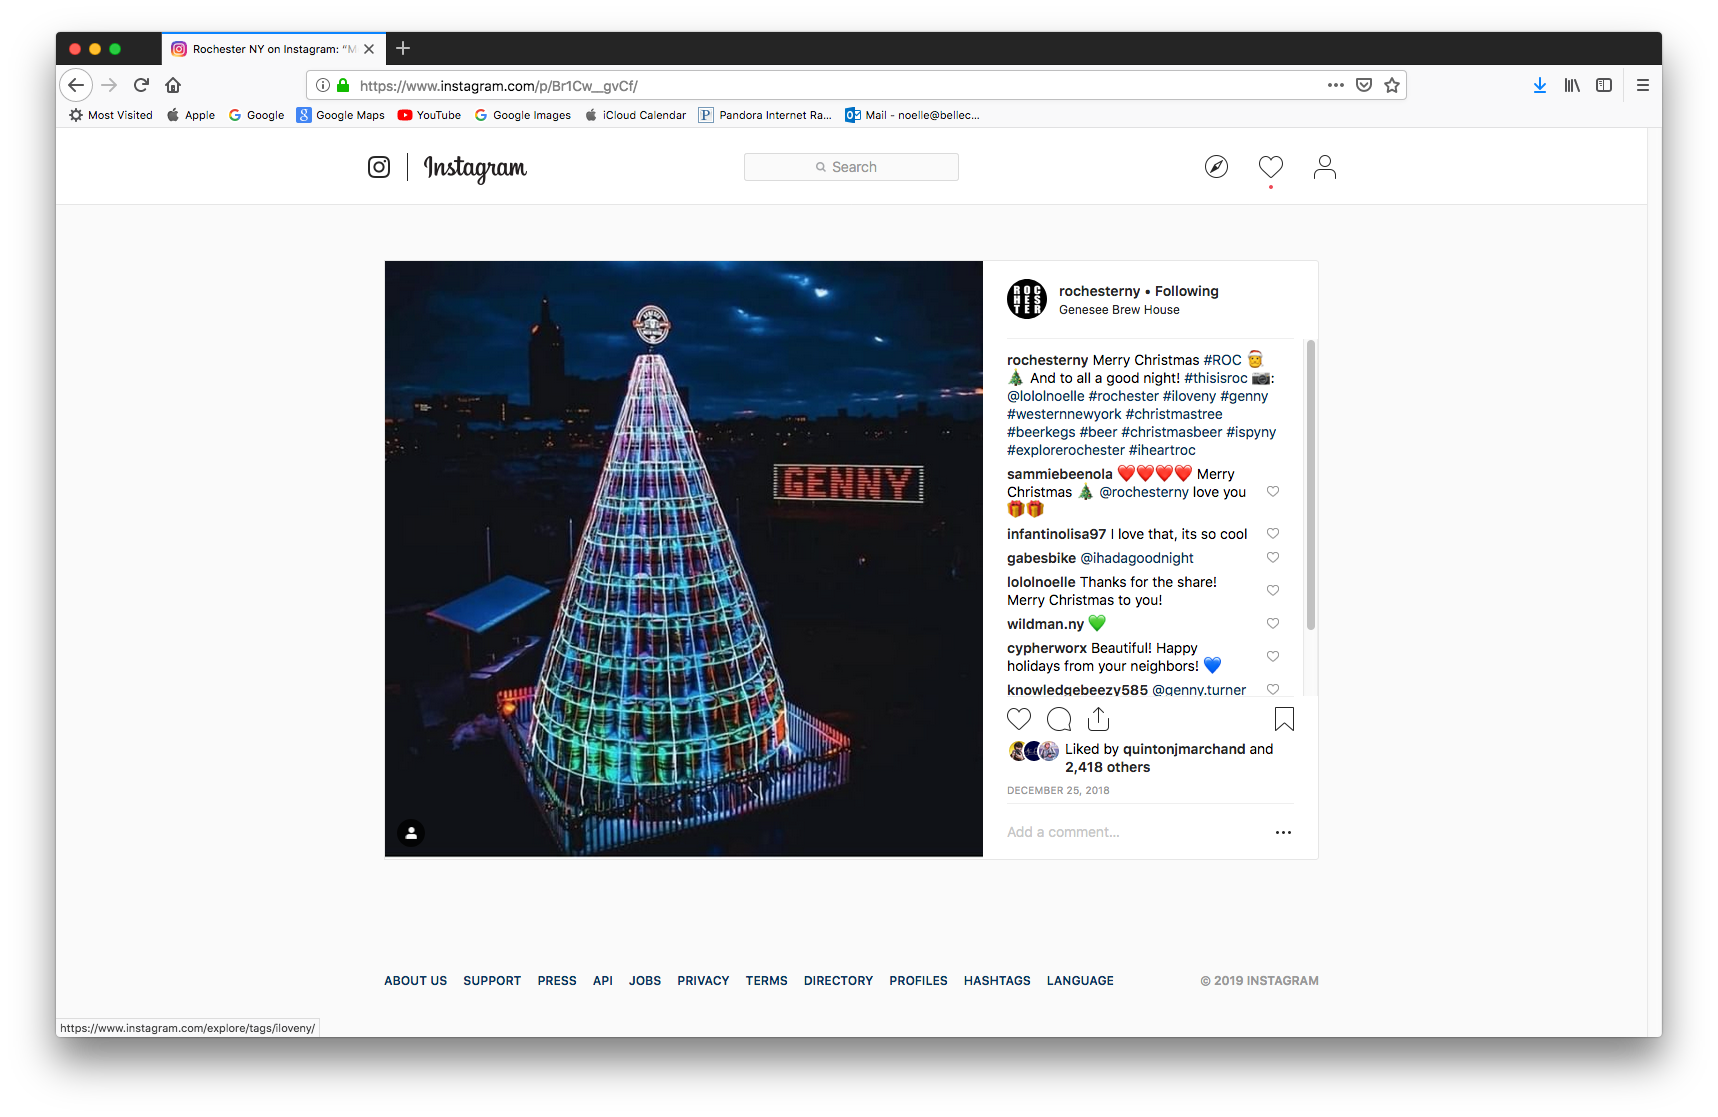 A Rochester Merry Christmas - Our picture of the Genesee Brew House keg tree was featured on a number of Instagram pages around the 2018 holidays: Rochester NY, I Heart Roc (also making their top 9 of 2018), In the City of Flowers and more.